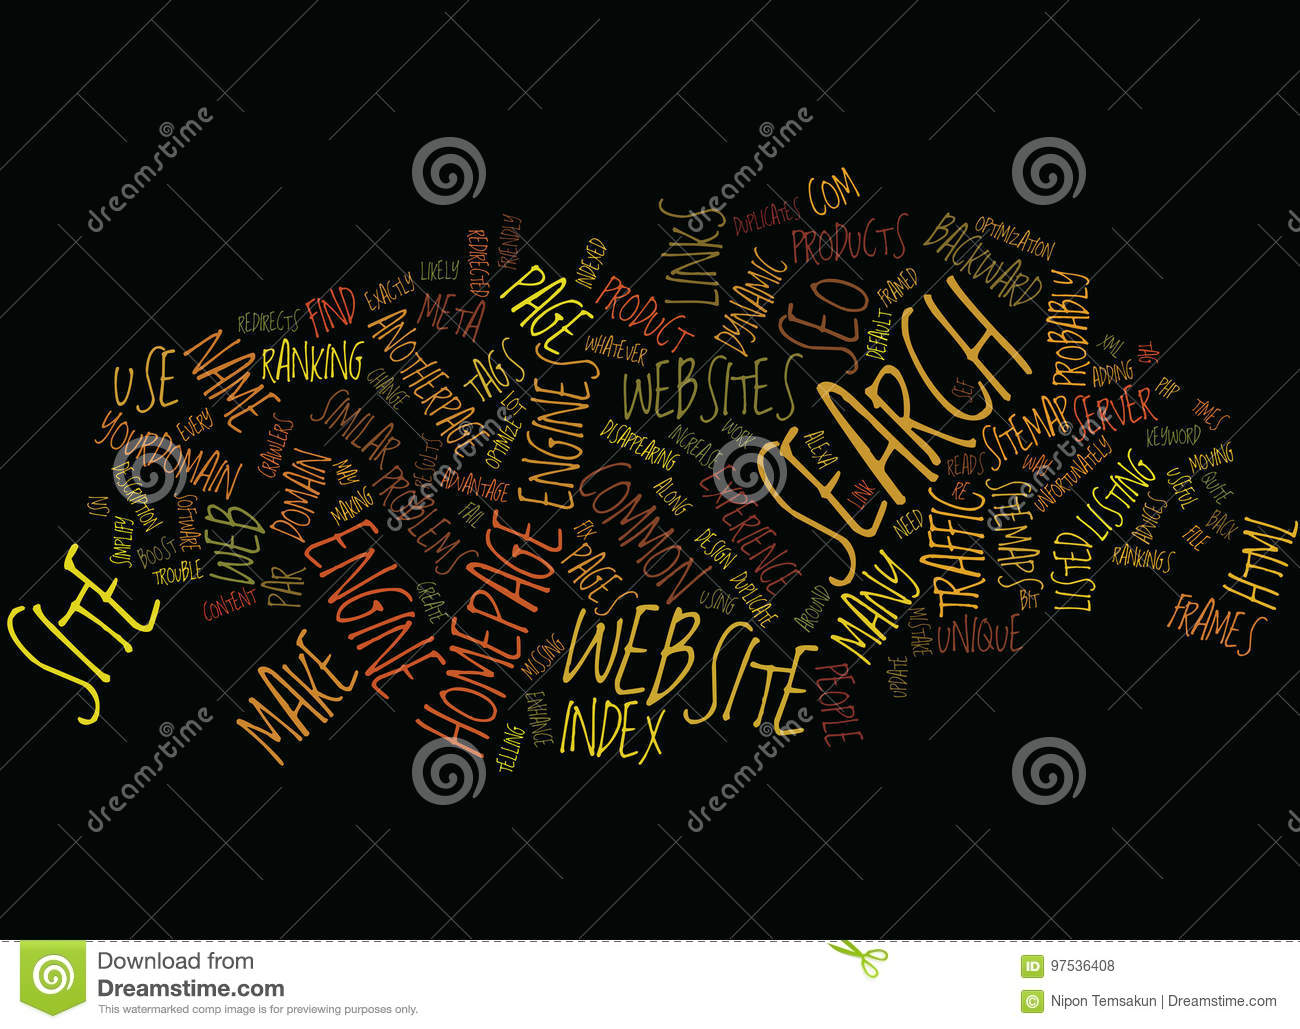 Enhance And Fix You Site For Seo Word Cloud Concept